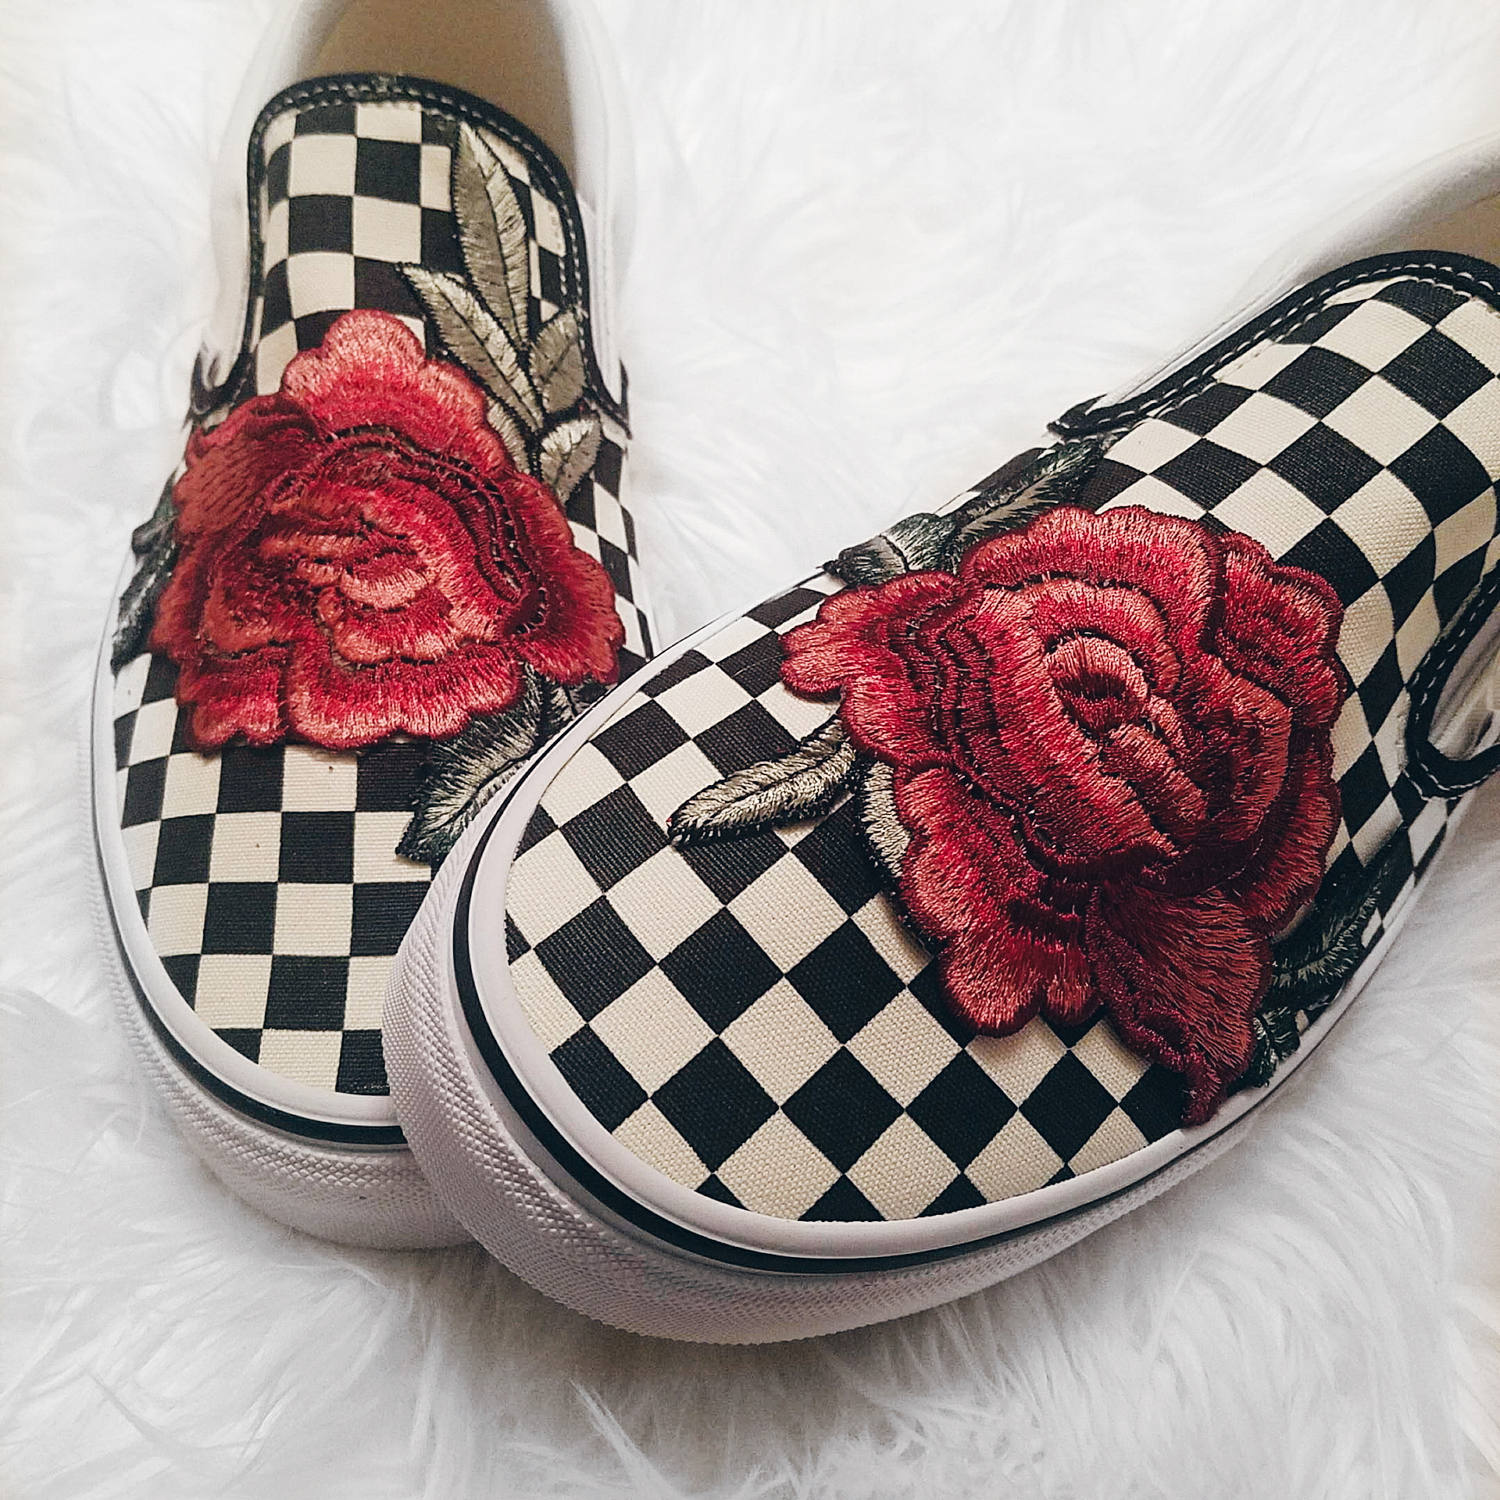 Unisex Checkered Slip On Custom Rose Floral Embroidered Patch  d5f9390ee